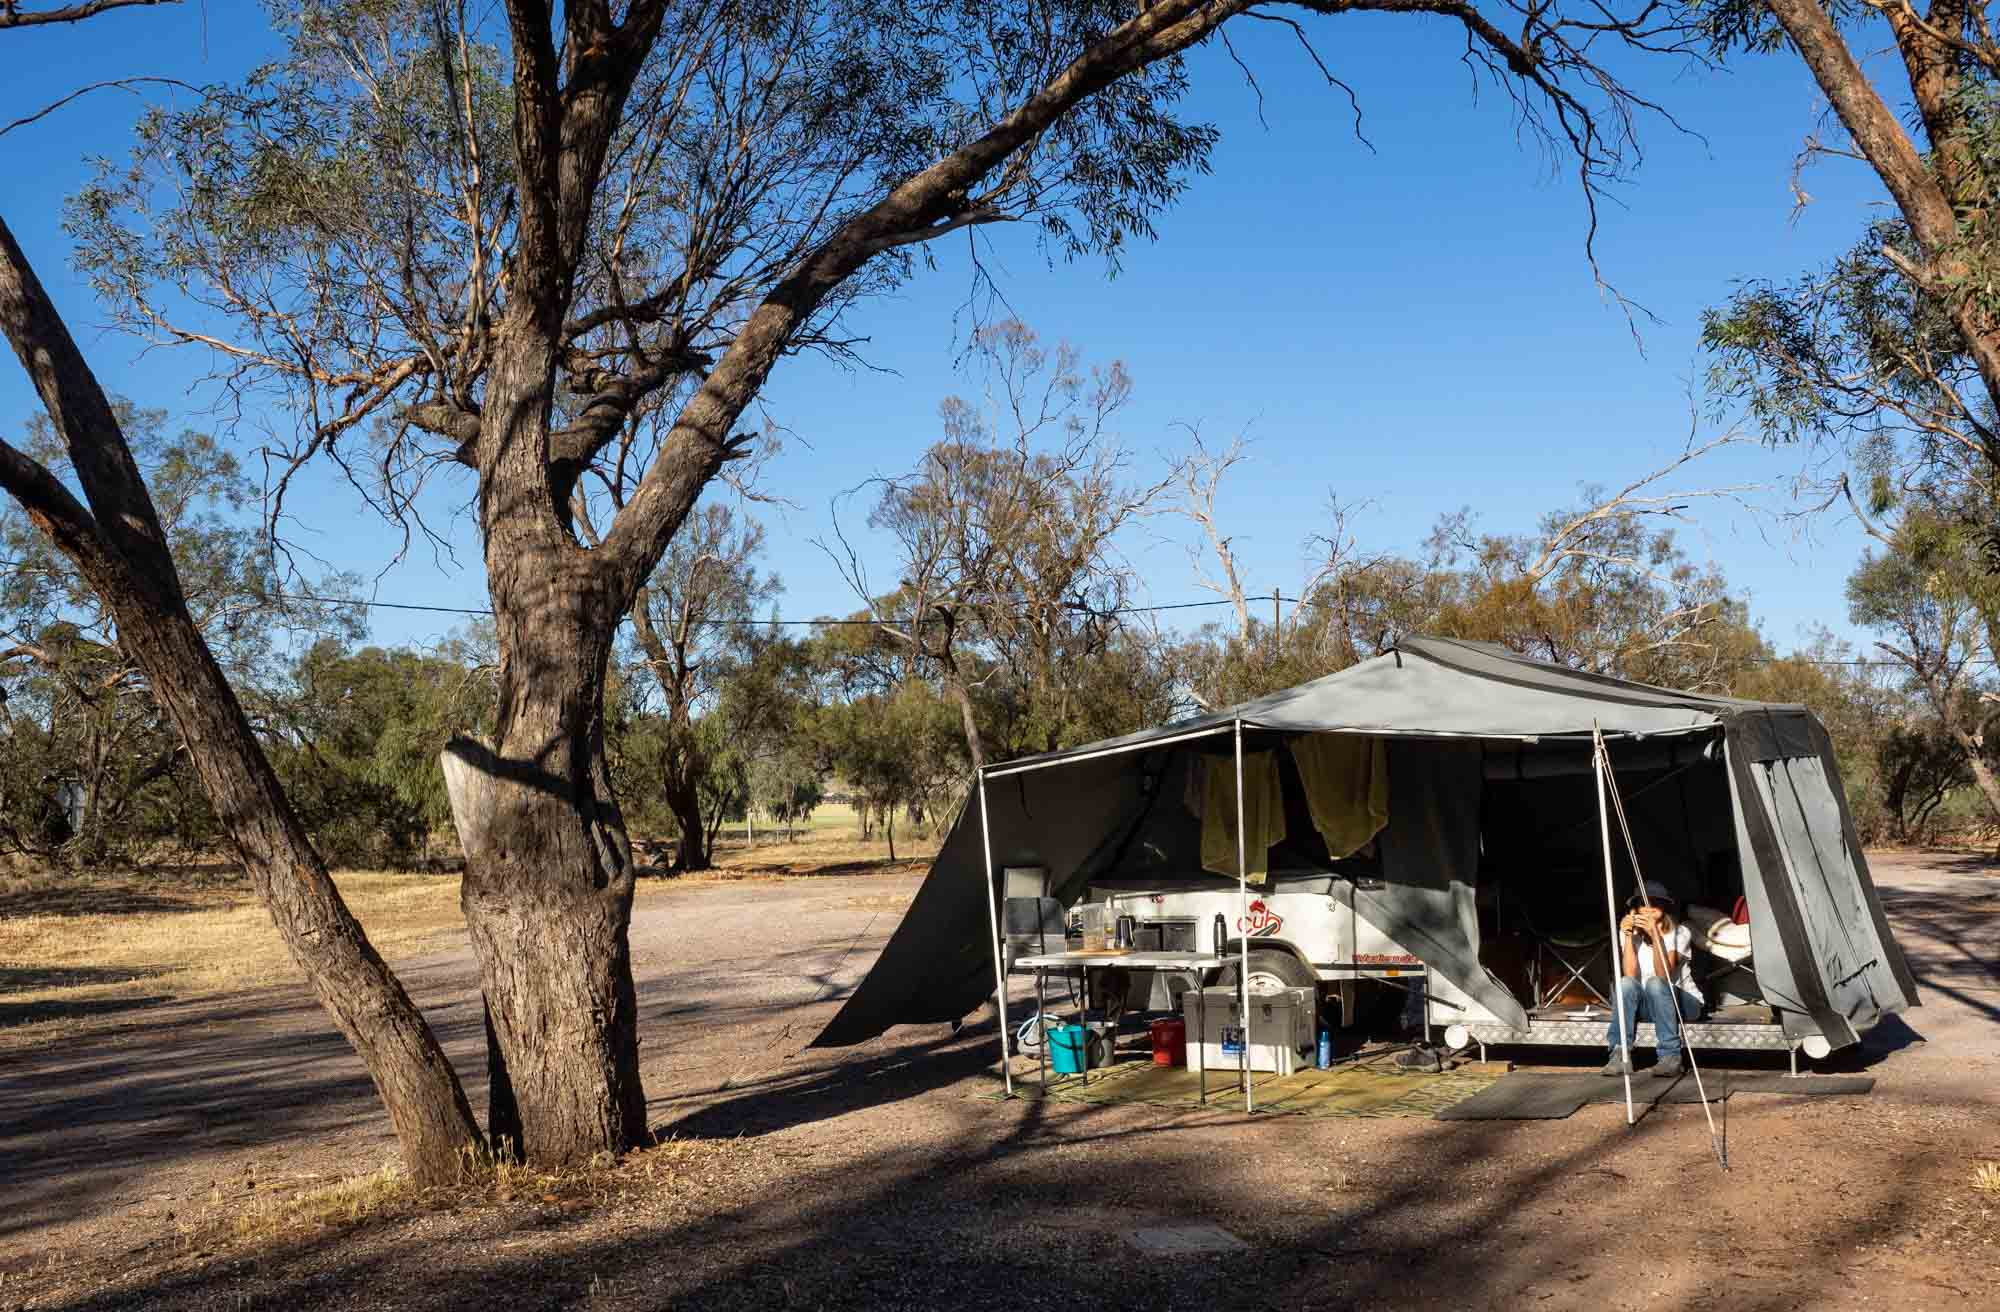 Almost like 'free camping' in the bush … but with power, toilets, and hot showers. Luxury!